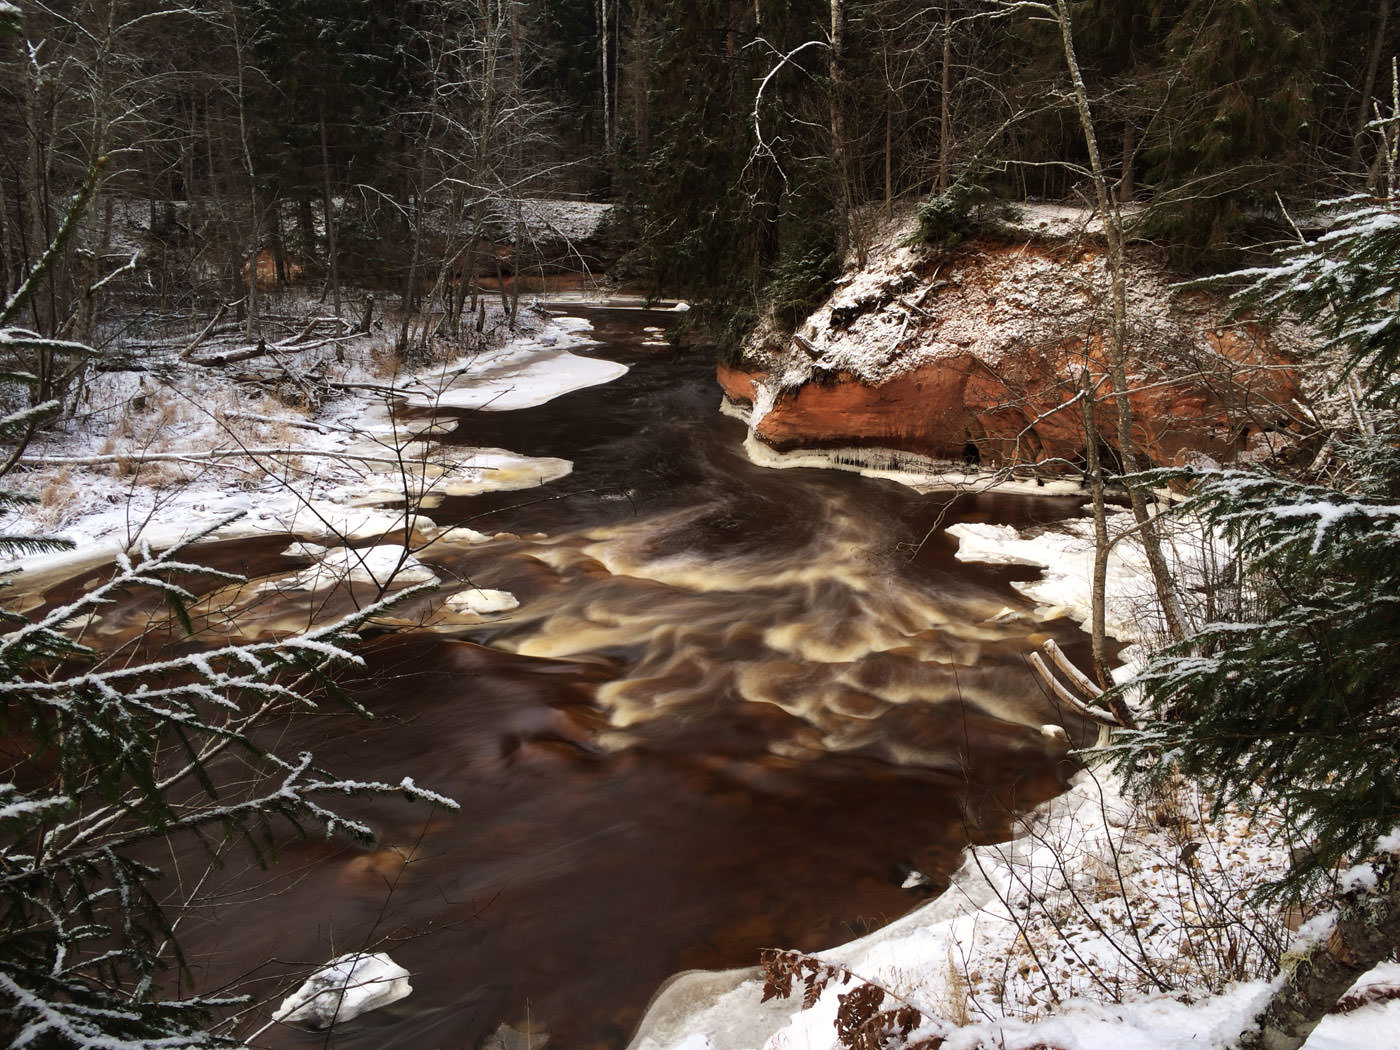 Blogpost: 10 Tips For Taking Stunning Landscape Photos With Your iPhone - Emil Pakarklis